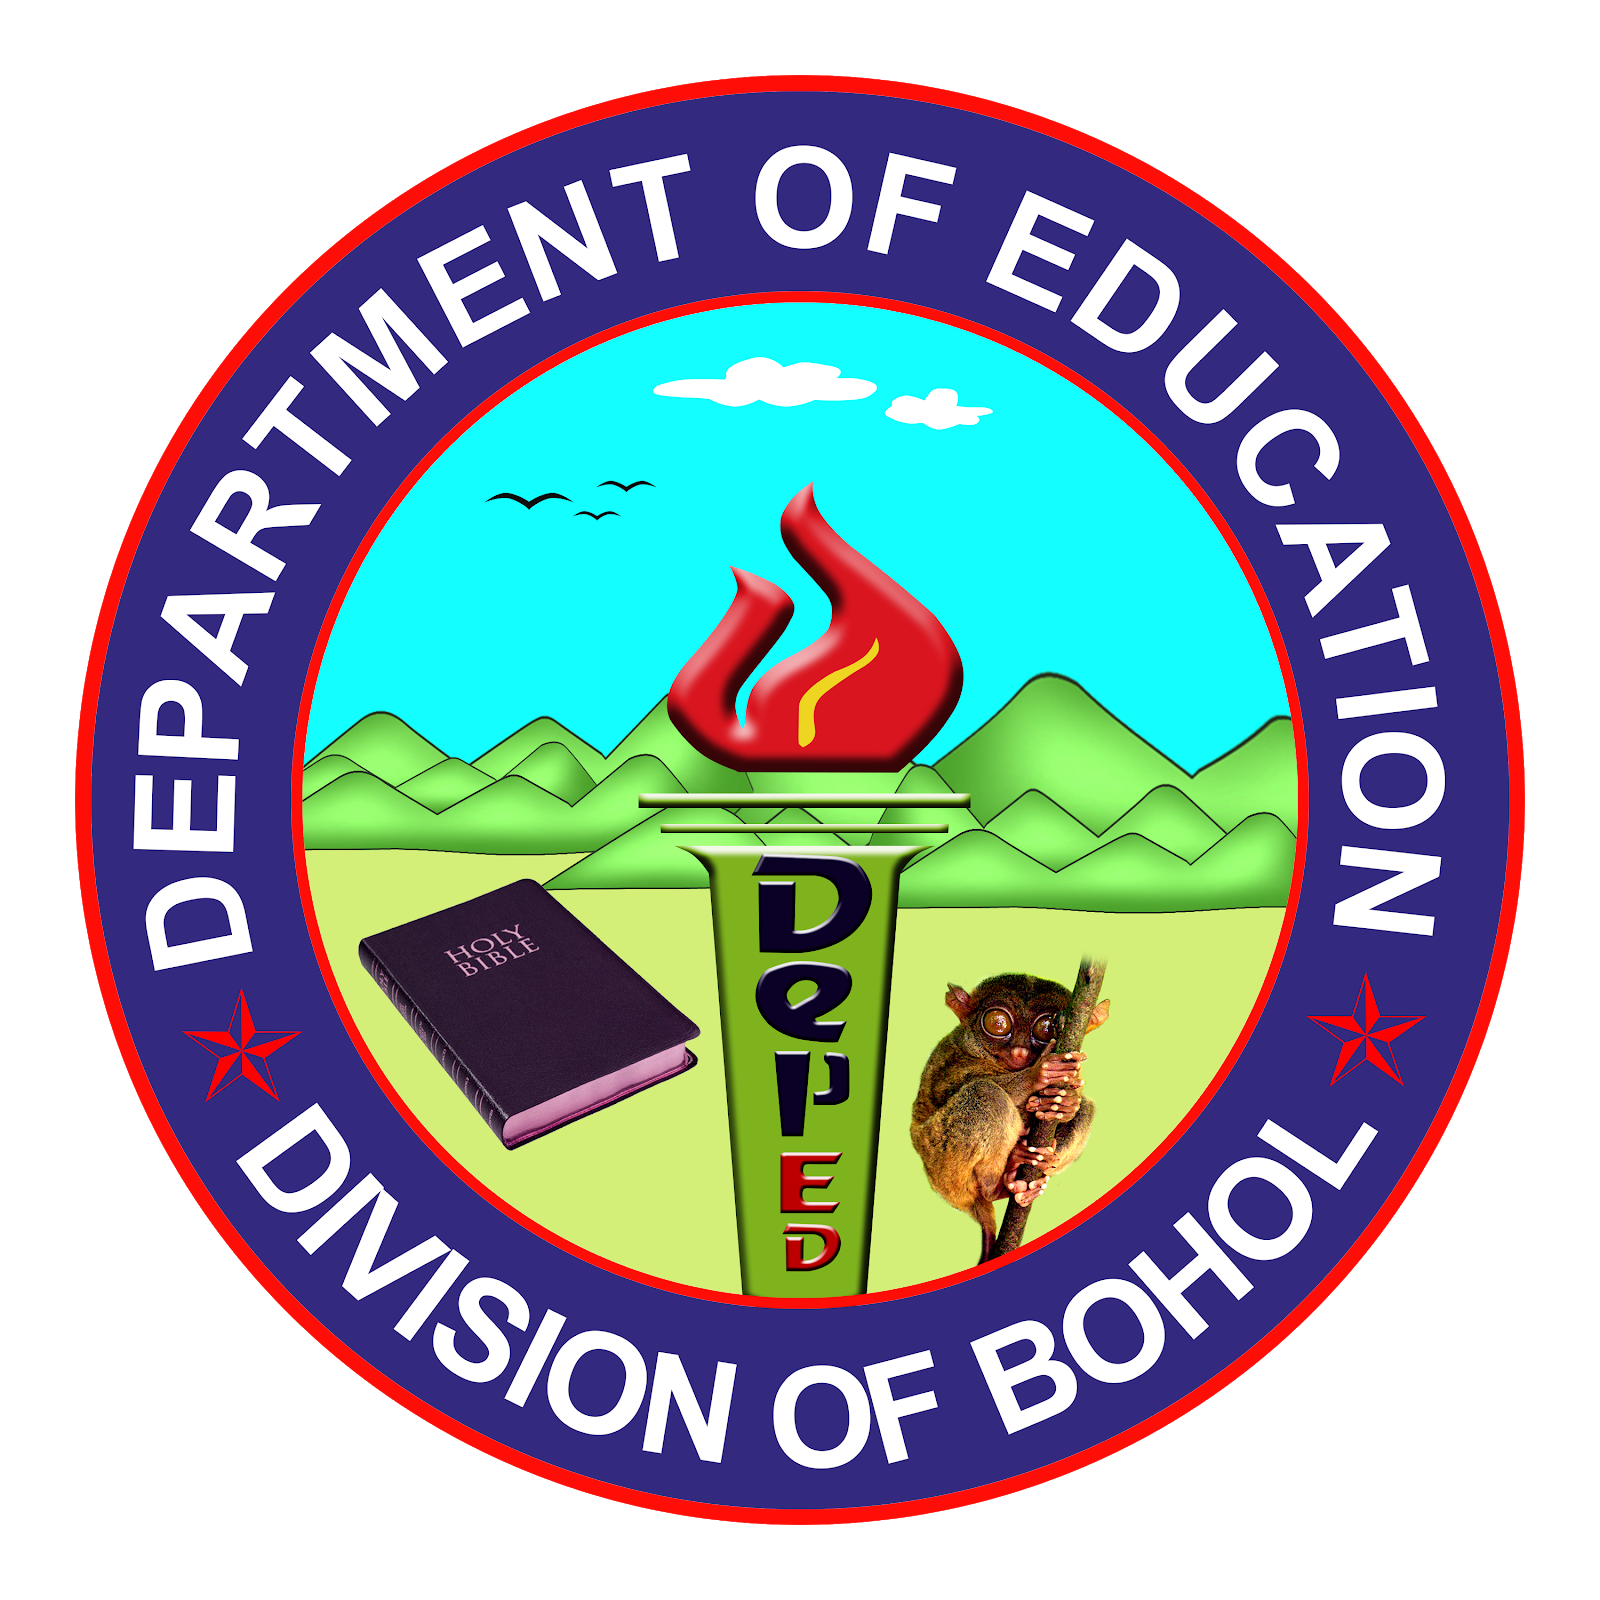 jomarie designs: deped logo.